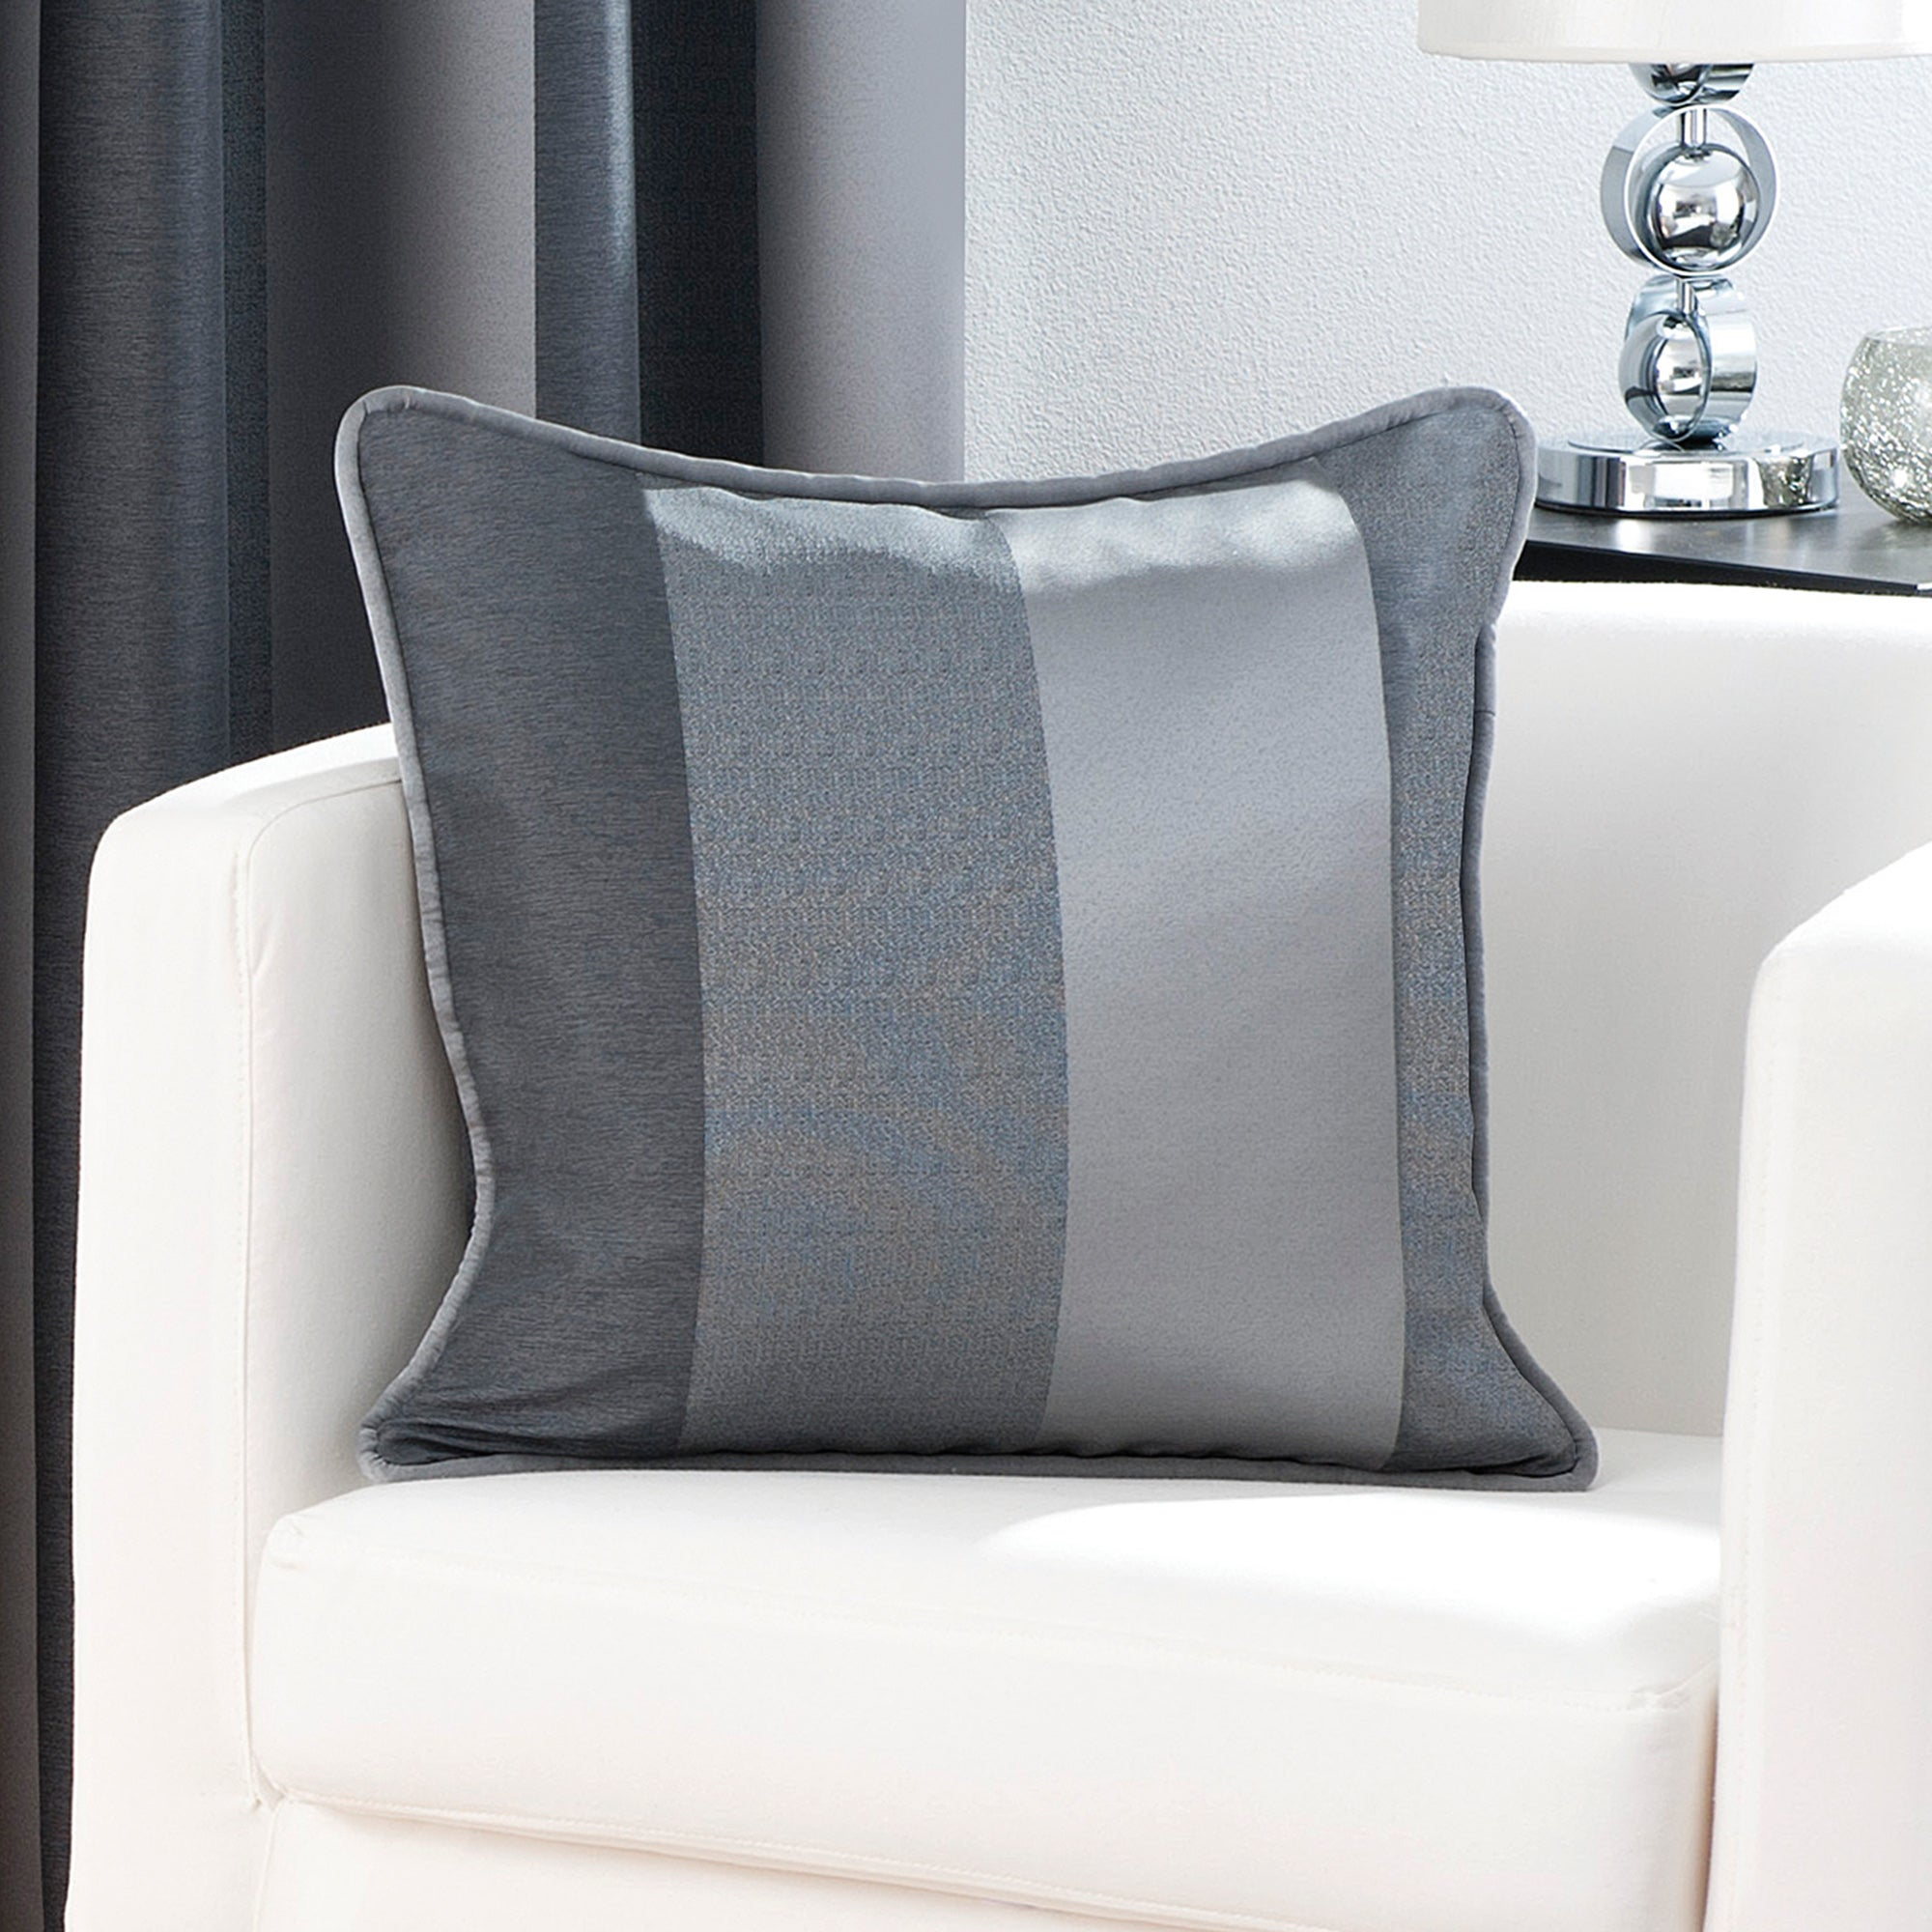 Pewter Monaco Collection Cushion